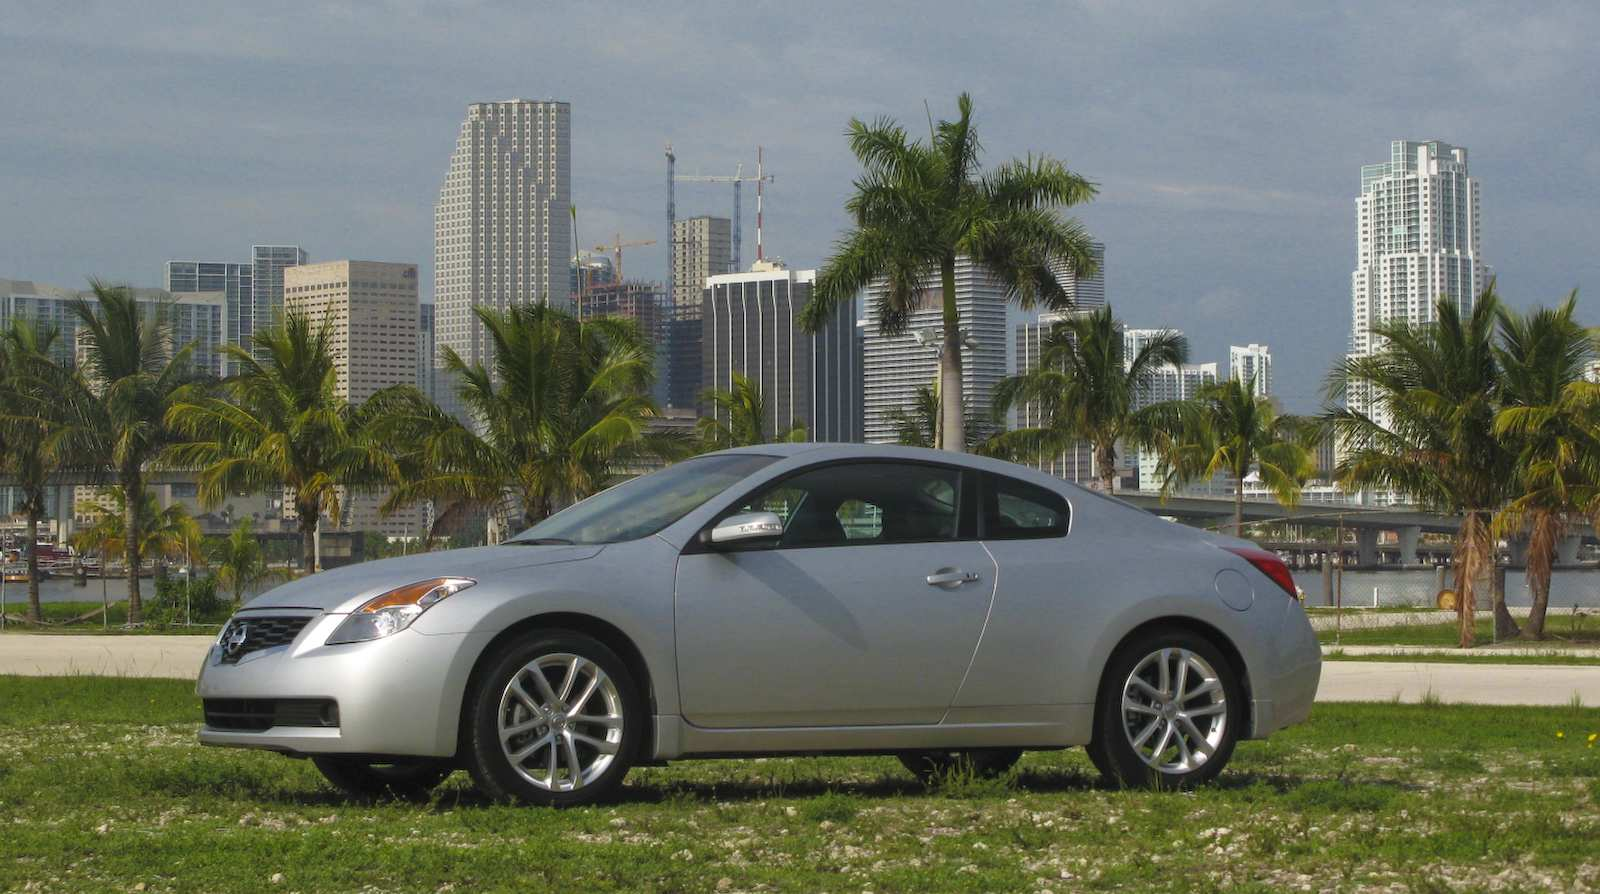 82 Best Review 2009 Nissan Altima Coupe Price by 2009 Nissan Altima Coupe